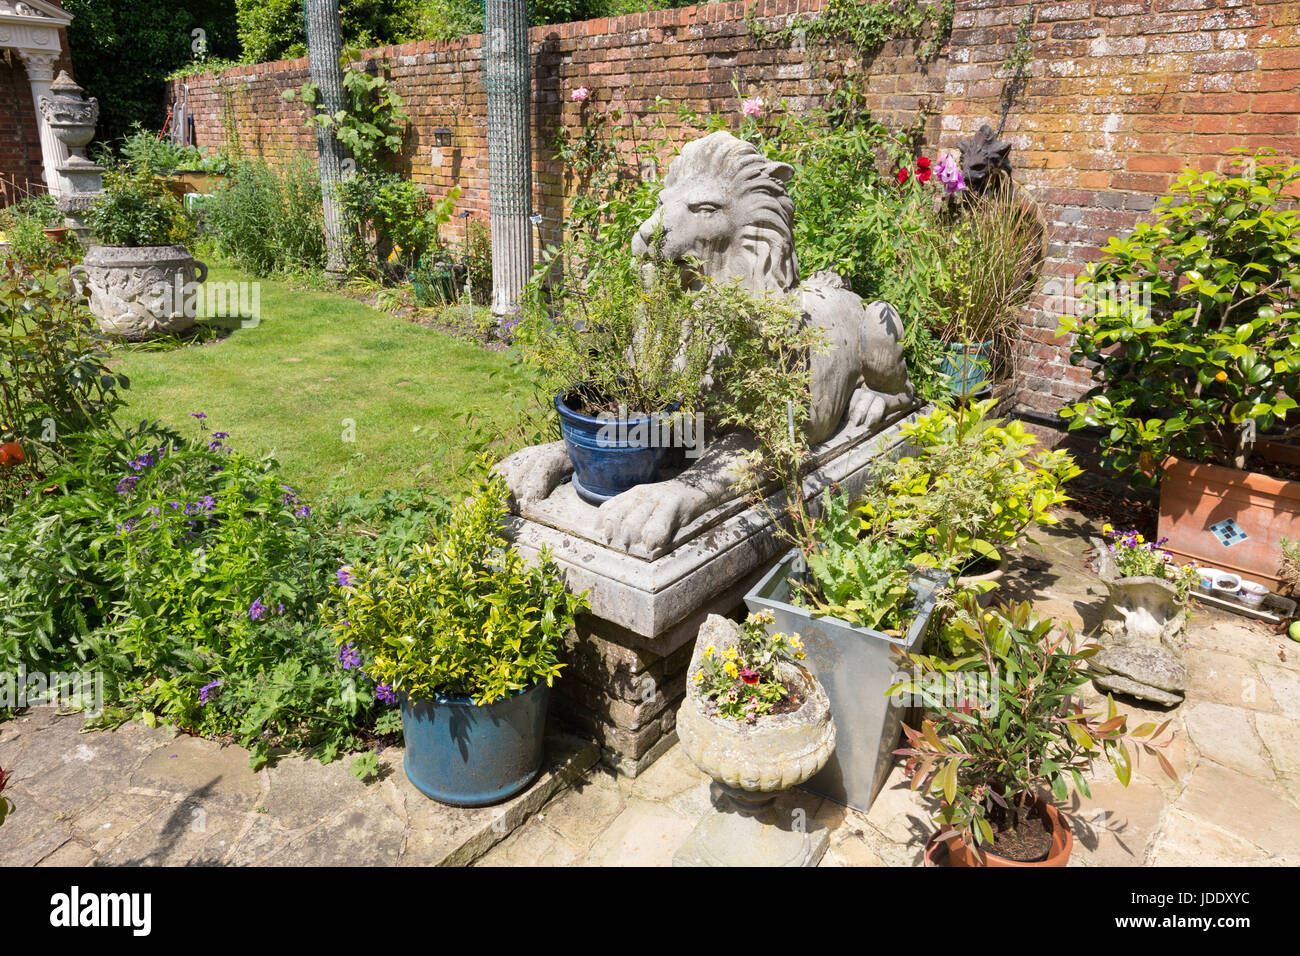 Large Garden Ornaments Including Lion Statues And Pots In An Ornate